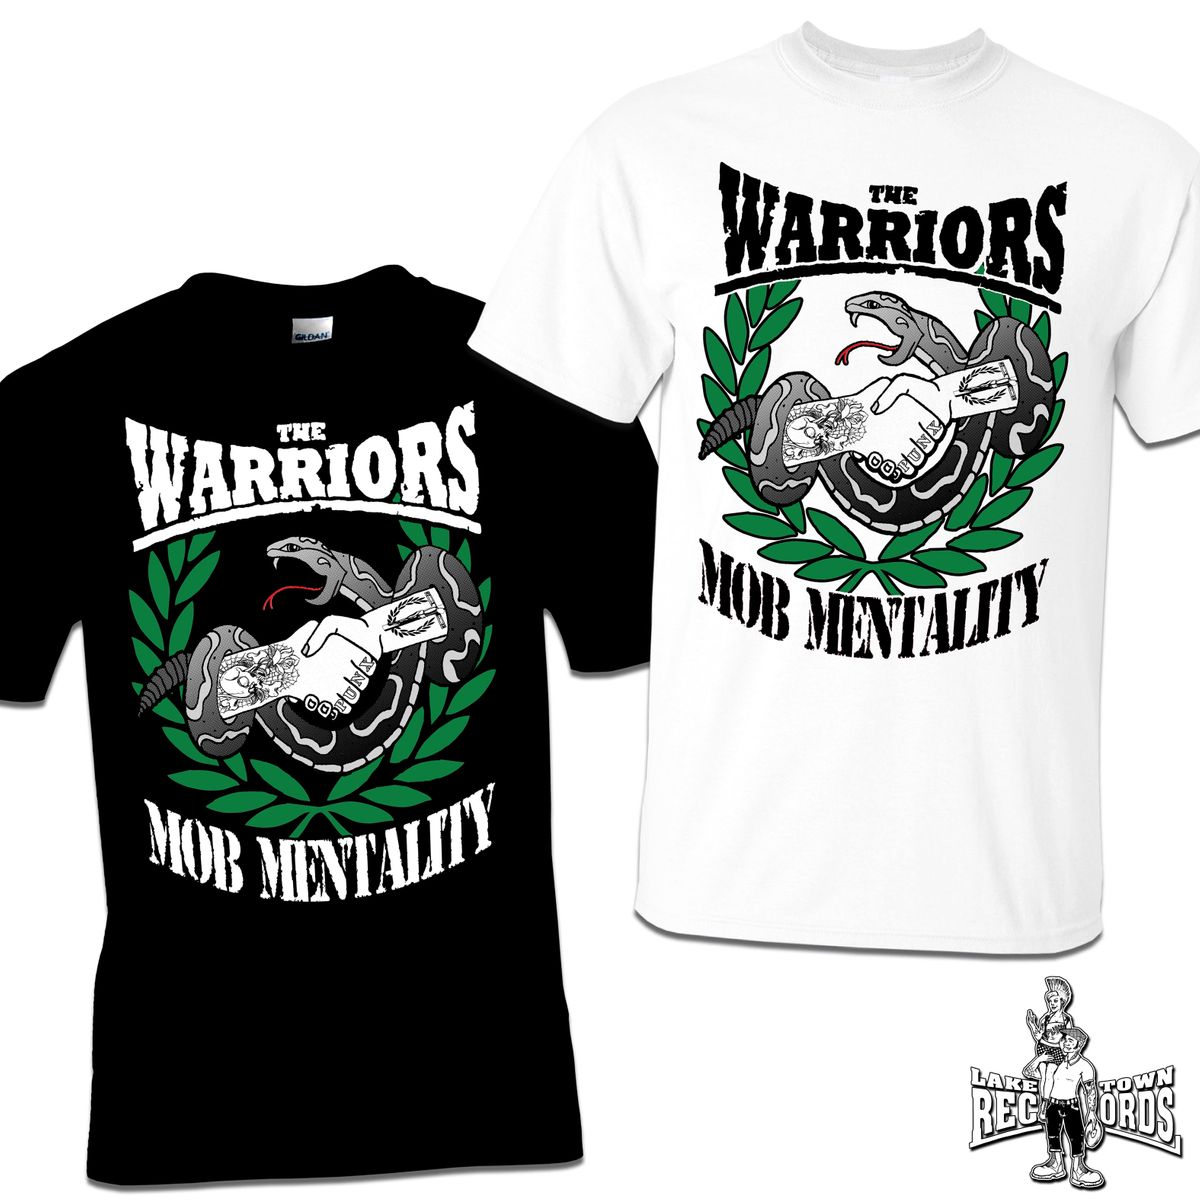 The Warriors / Mob Mentality - Friendship (T-Shirt)